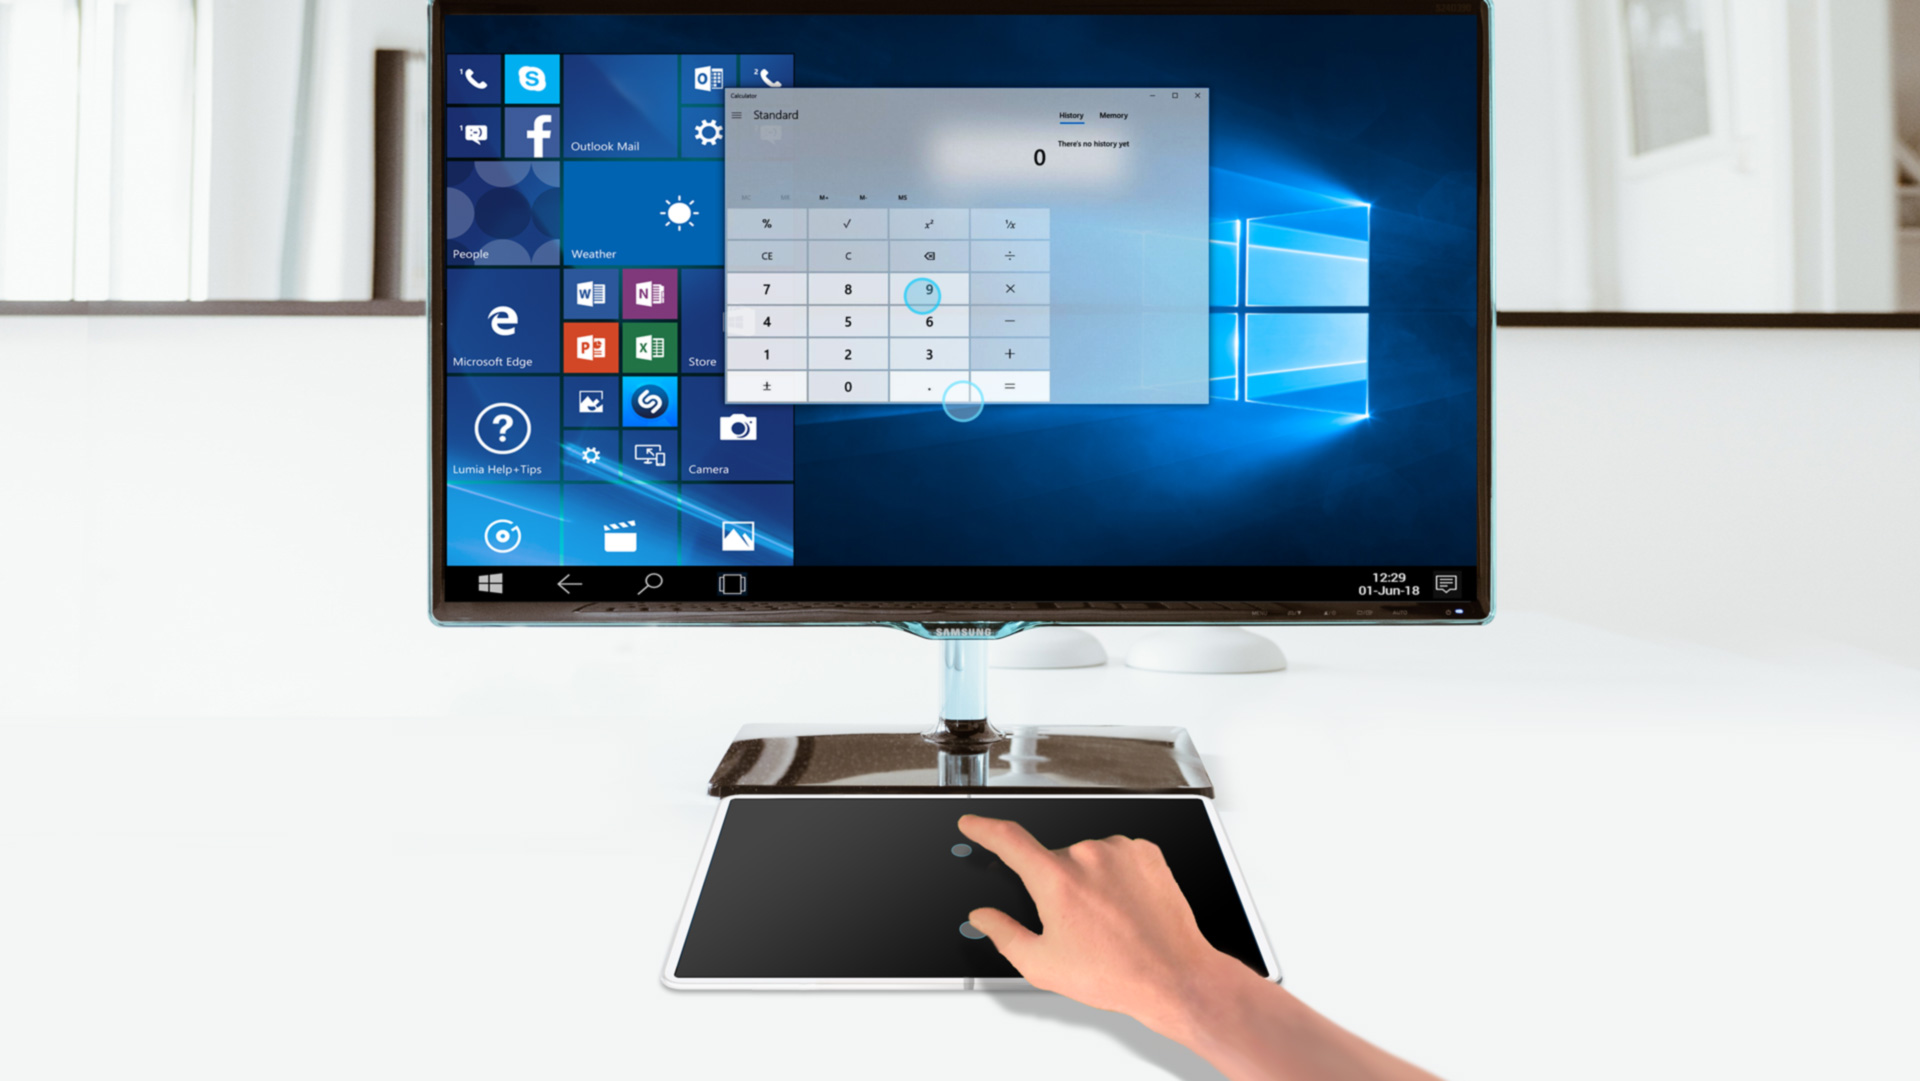 When casting onto an external display, you can dim use your device's screen and use it  as an advanced Multi-Hover Touchpad.